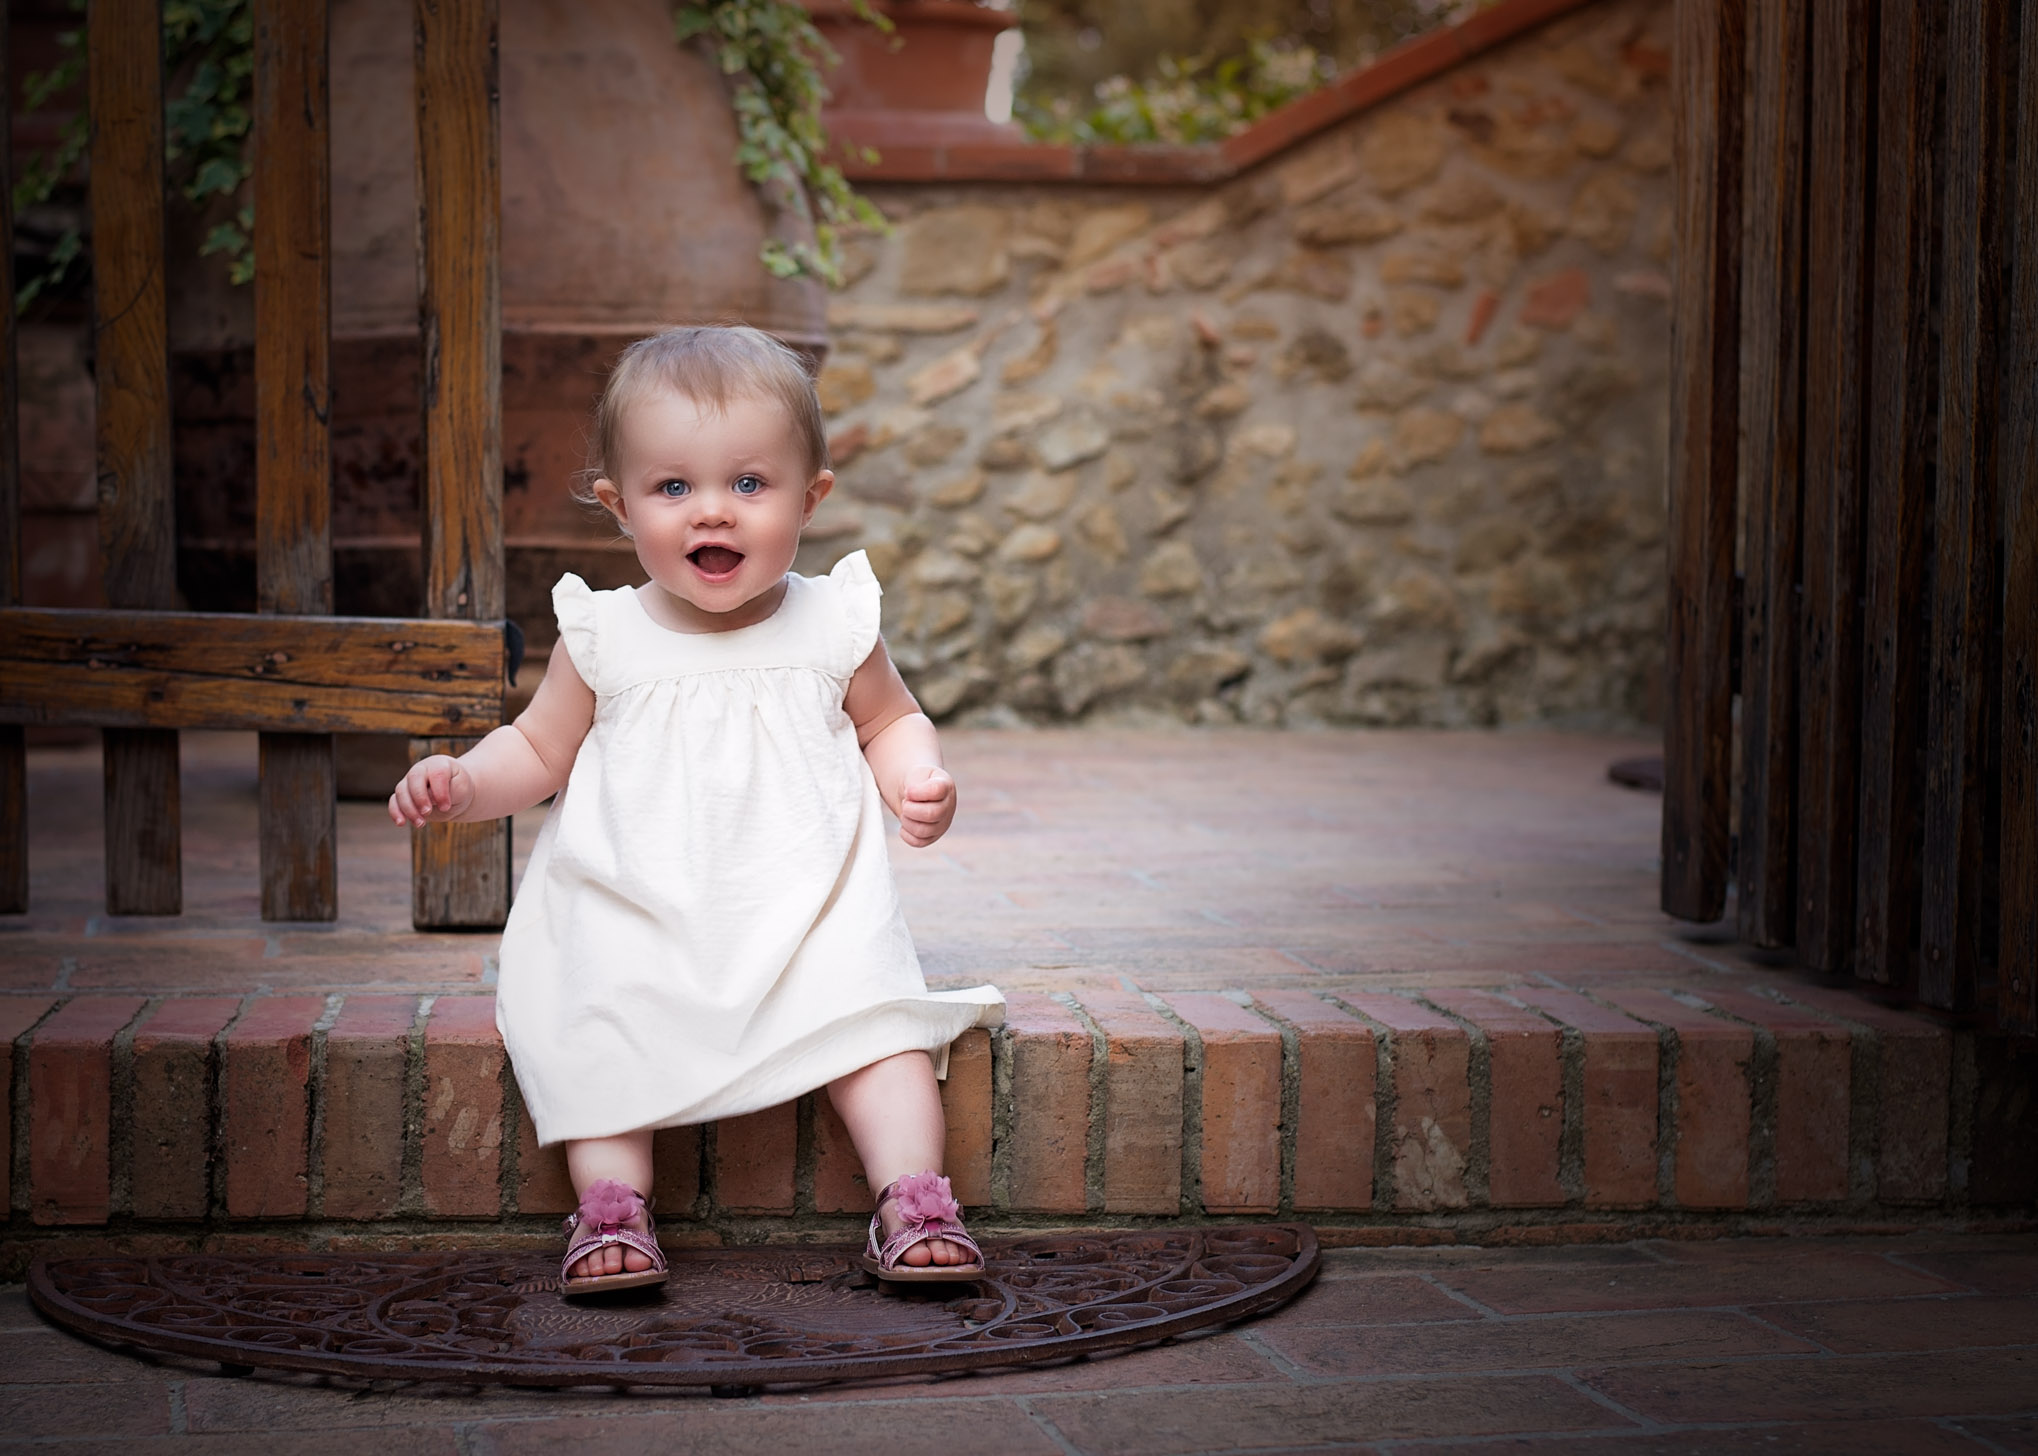 On the steps at a Tuscan Vineyard | Children's Photography